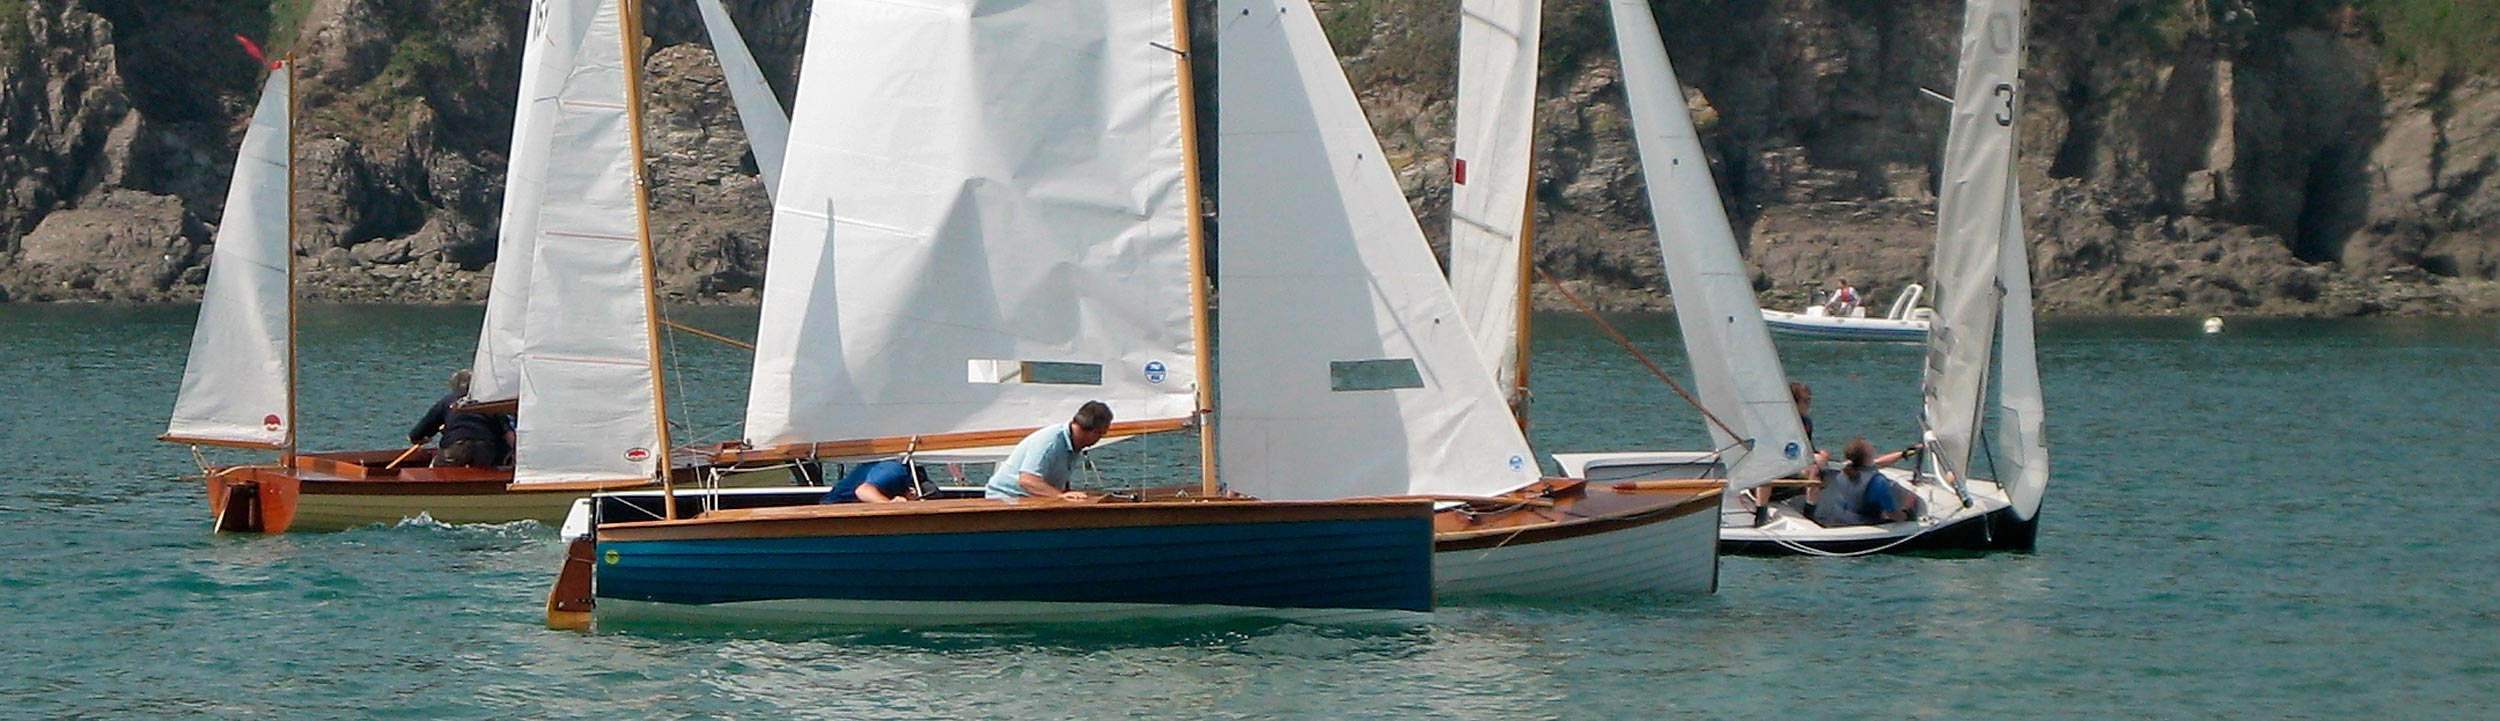 Salcombe yawls racing